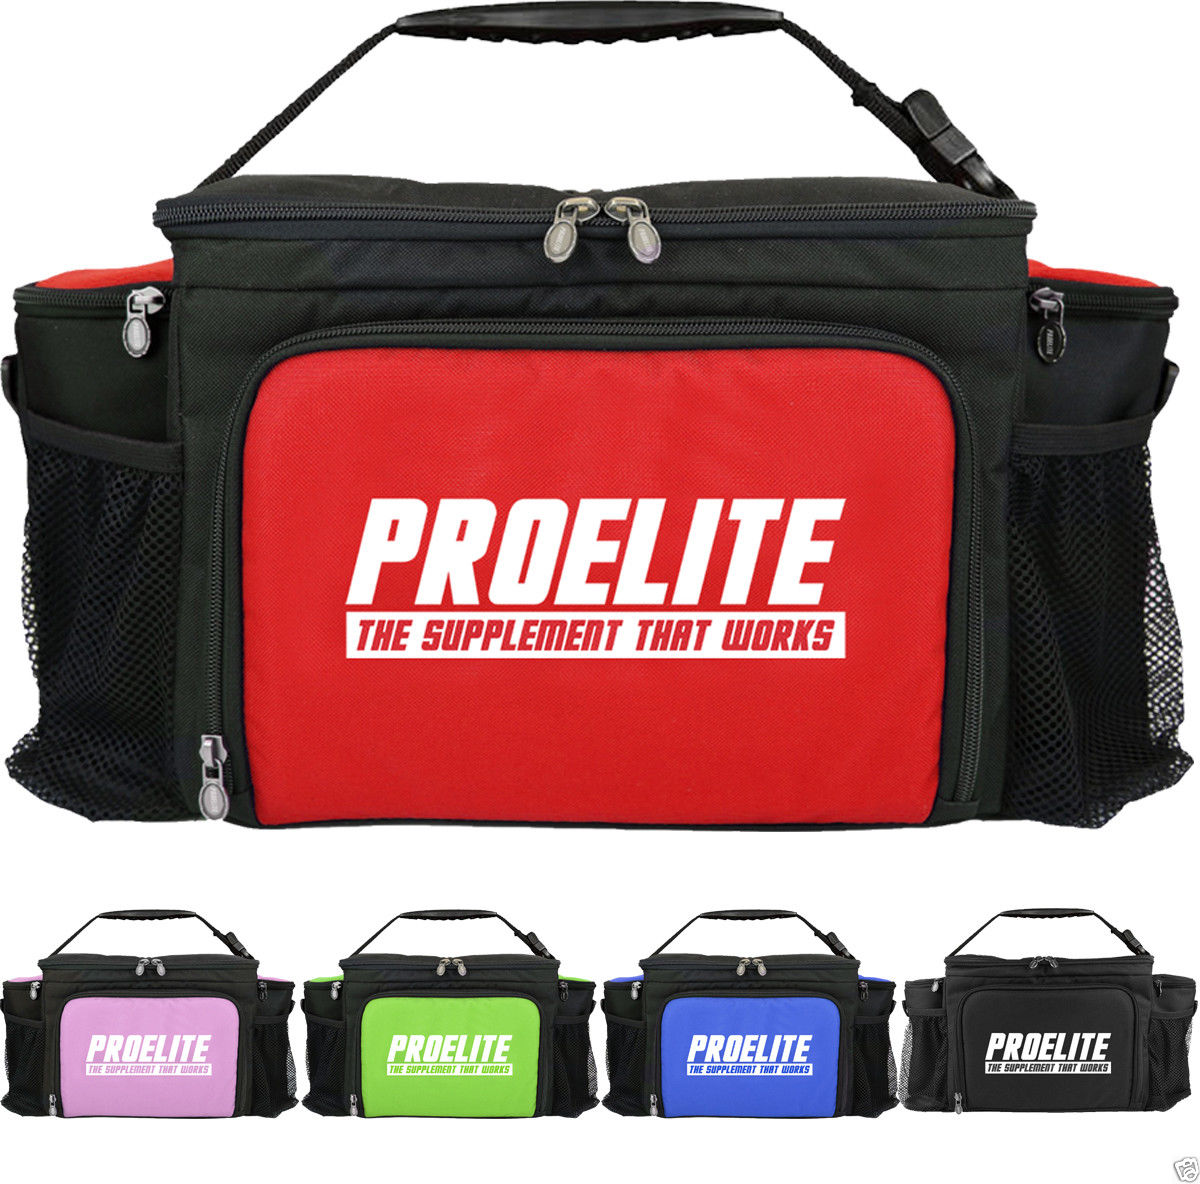 Pro Elite Insulated 6 Meal Bag Fitness Food Management